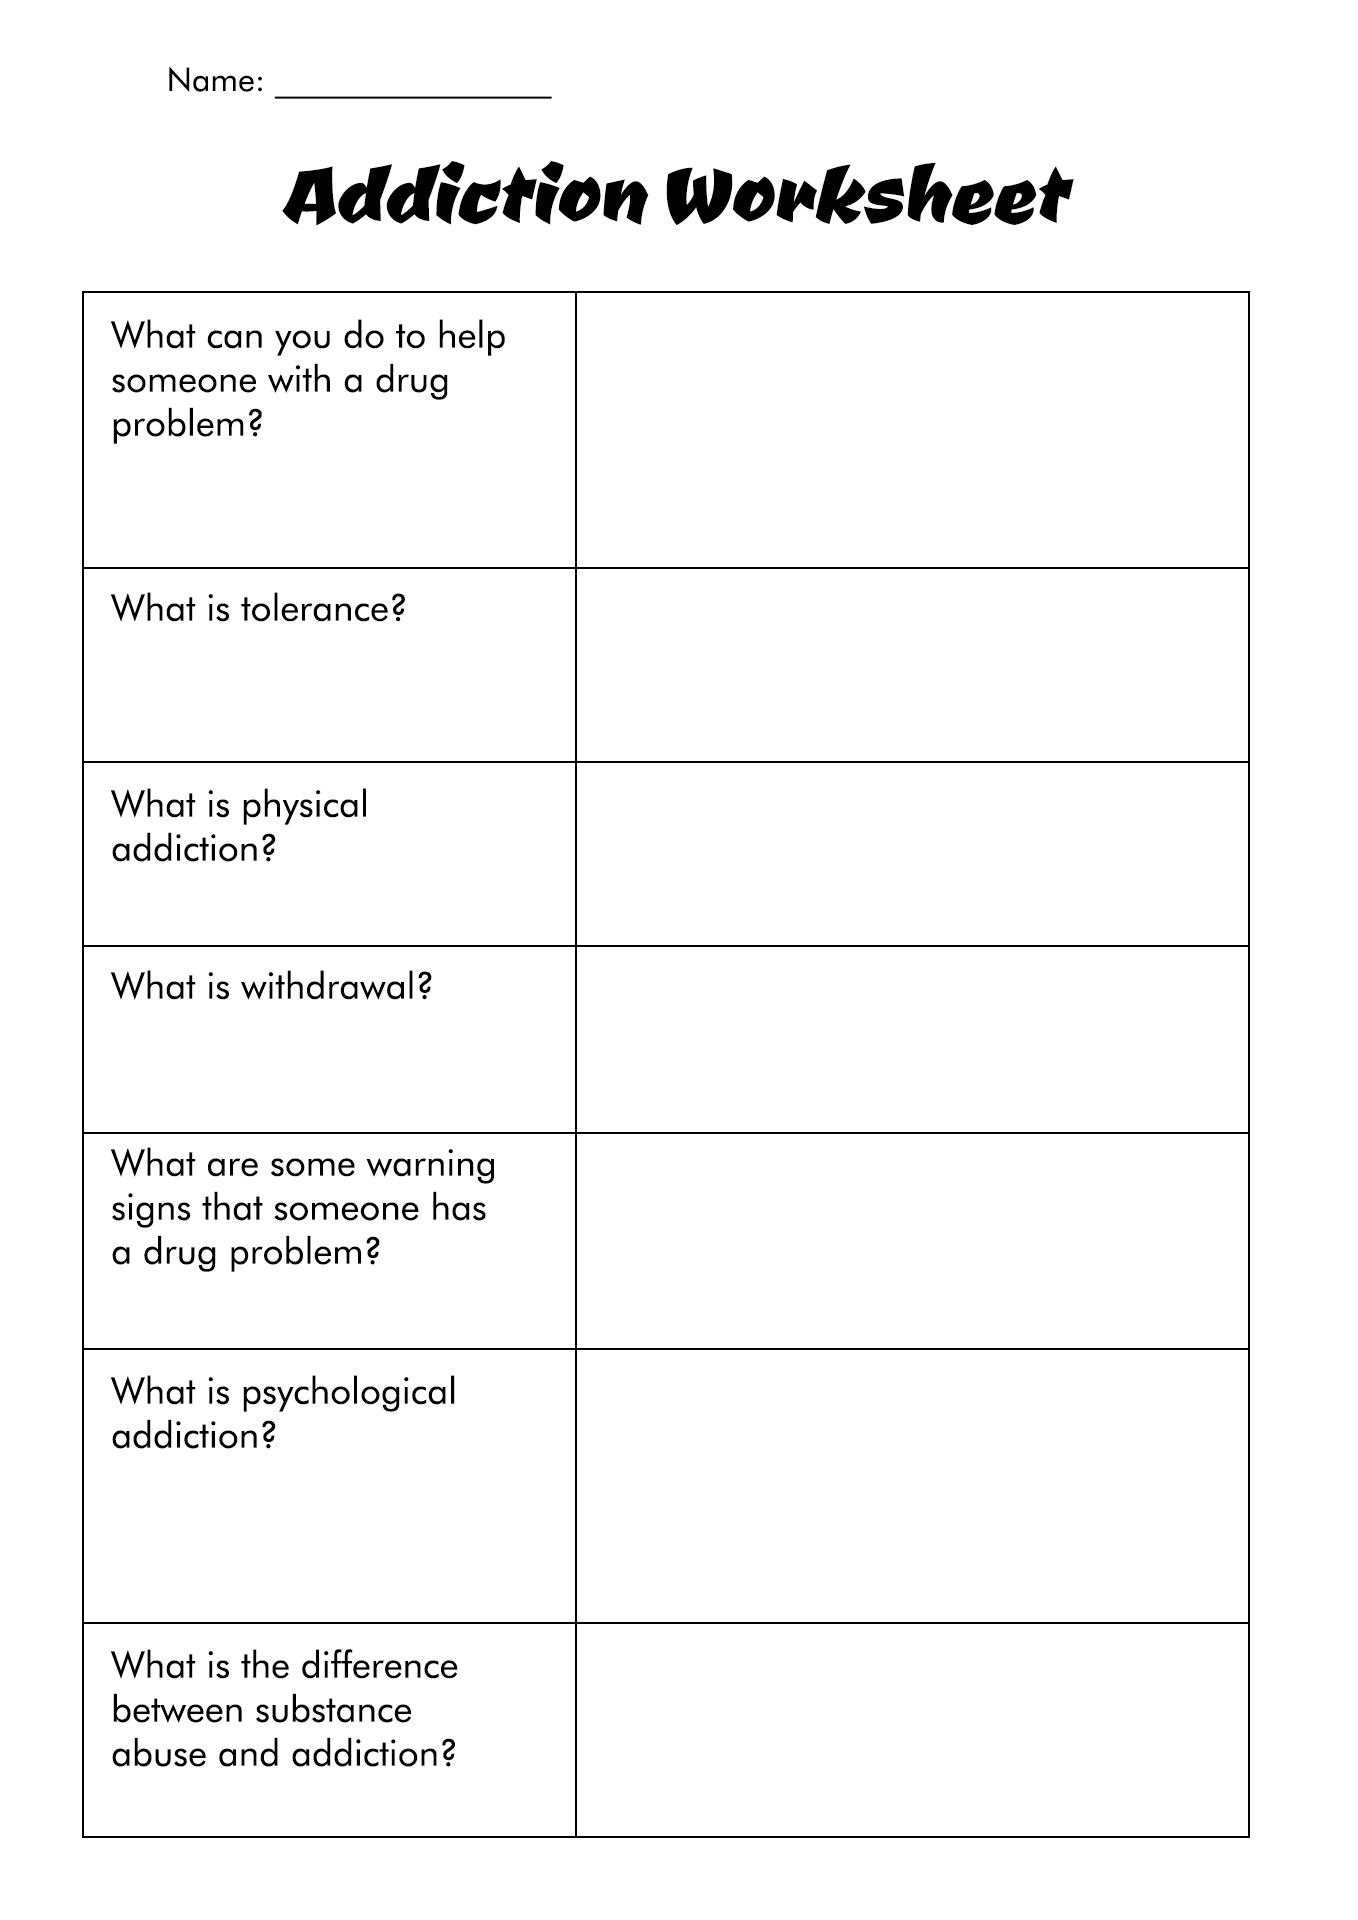 Substance Abuse Treatment Worksheets Worksheets Releaseboard – Relapse Prevention Worksheets